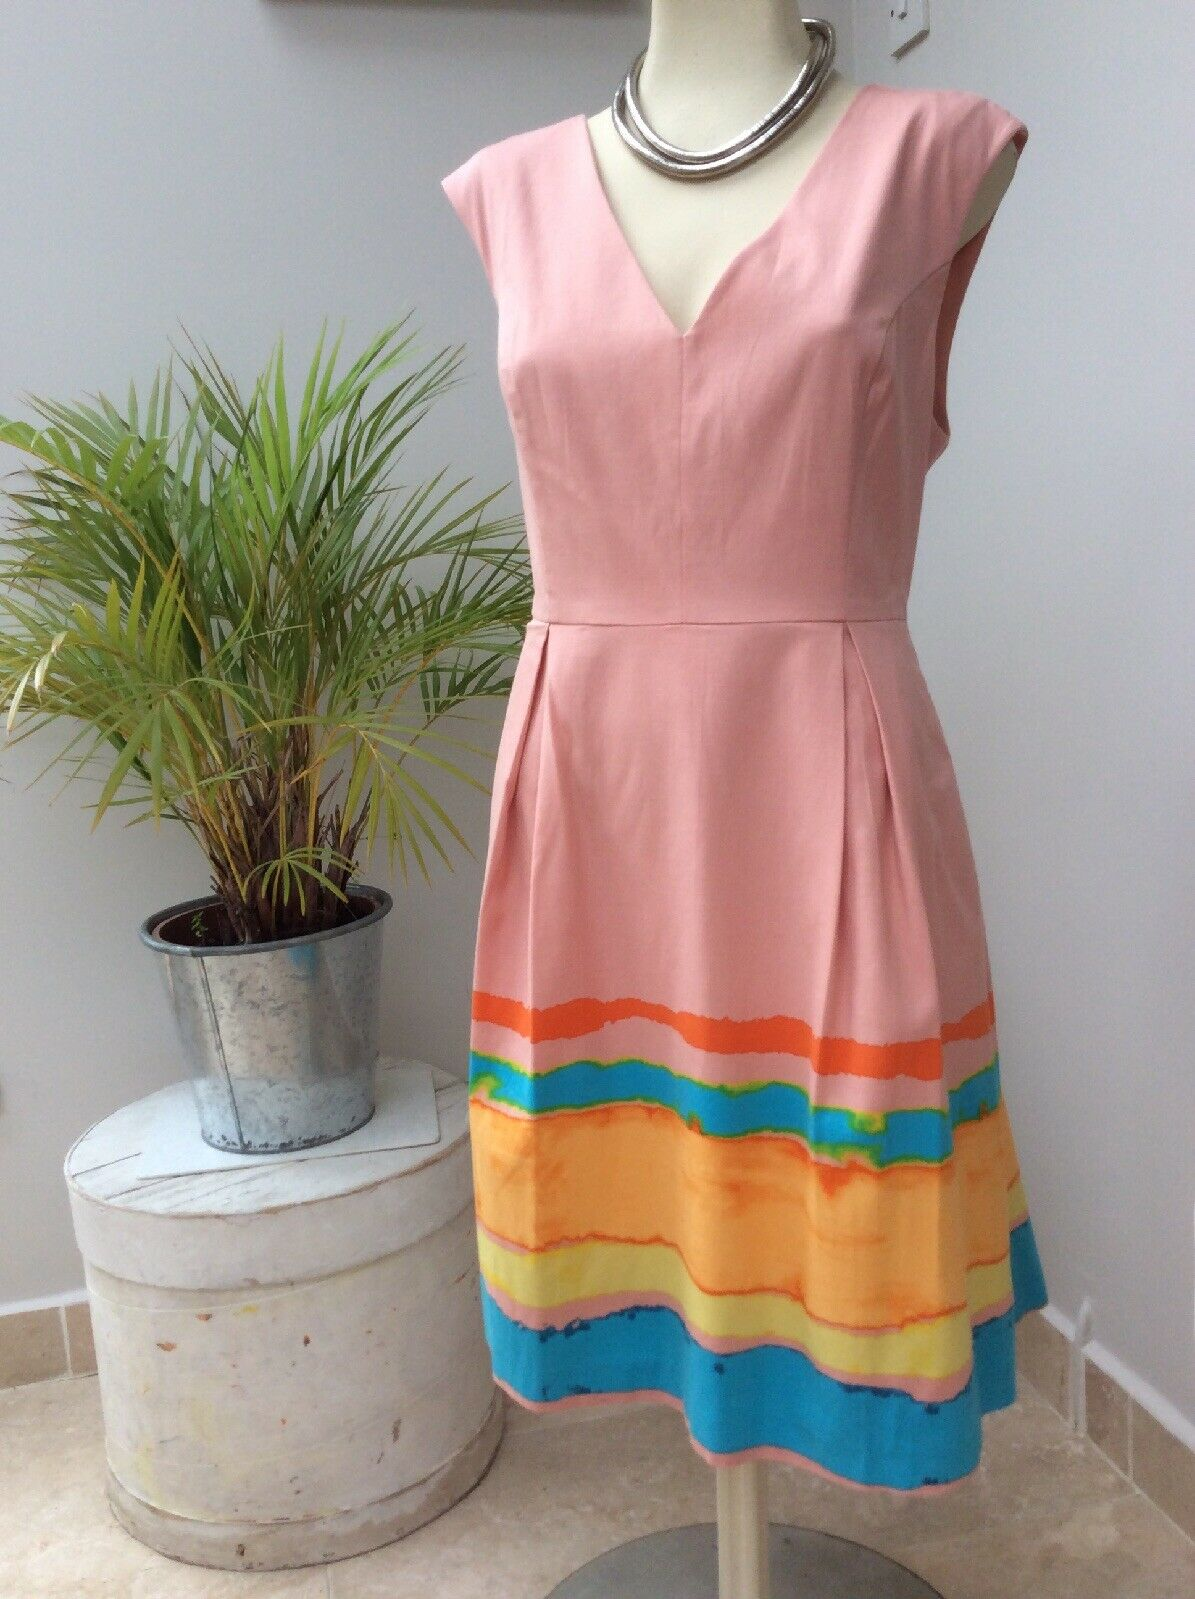 TRACEY REECE ANTHROPOLOGIE Rosa Rosa FIT AND FLARE DRESS Größe UK14 BNWT RRP